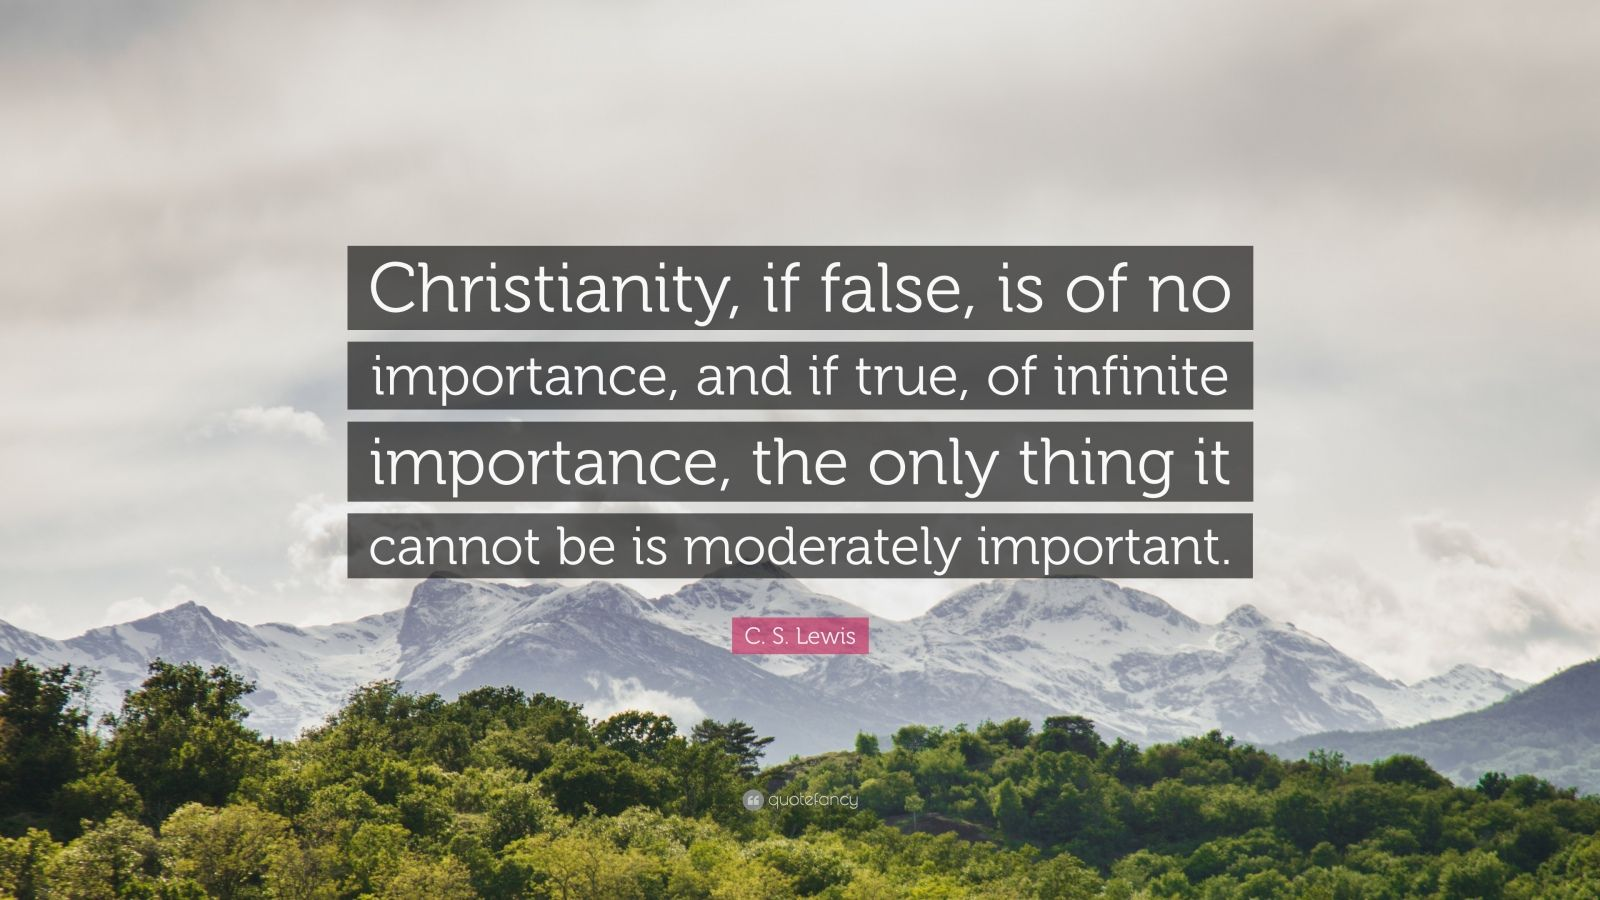 """C. S. Lewis Quote: """"Christianity, if false, is of no importance, and if true, of infinite importance, the only thing it cannot be is moderately important."""""""